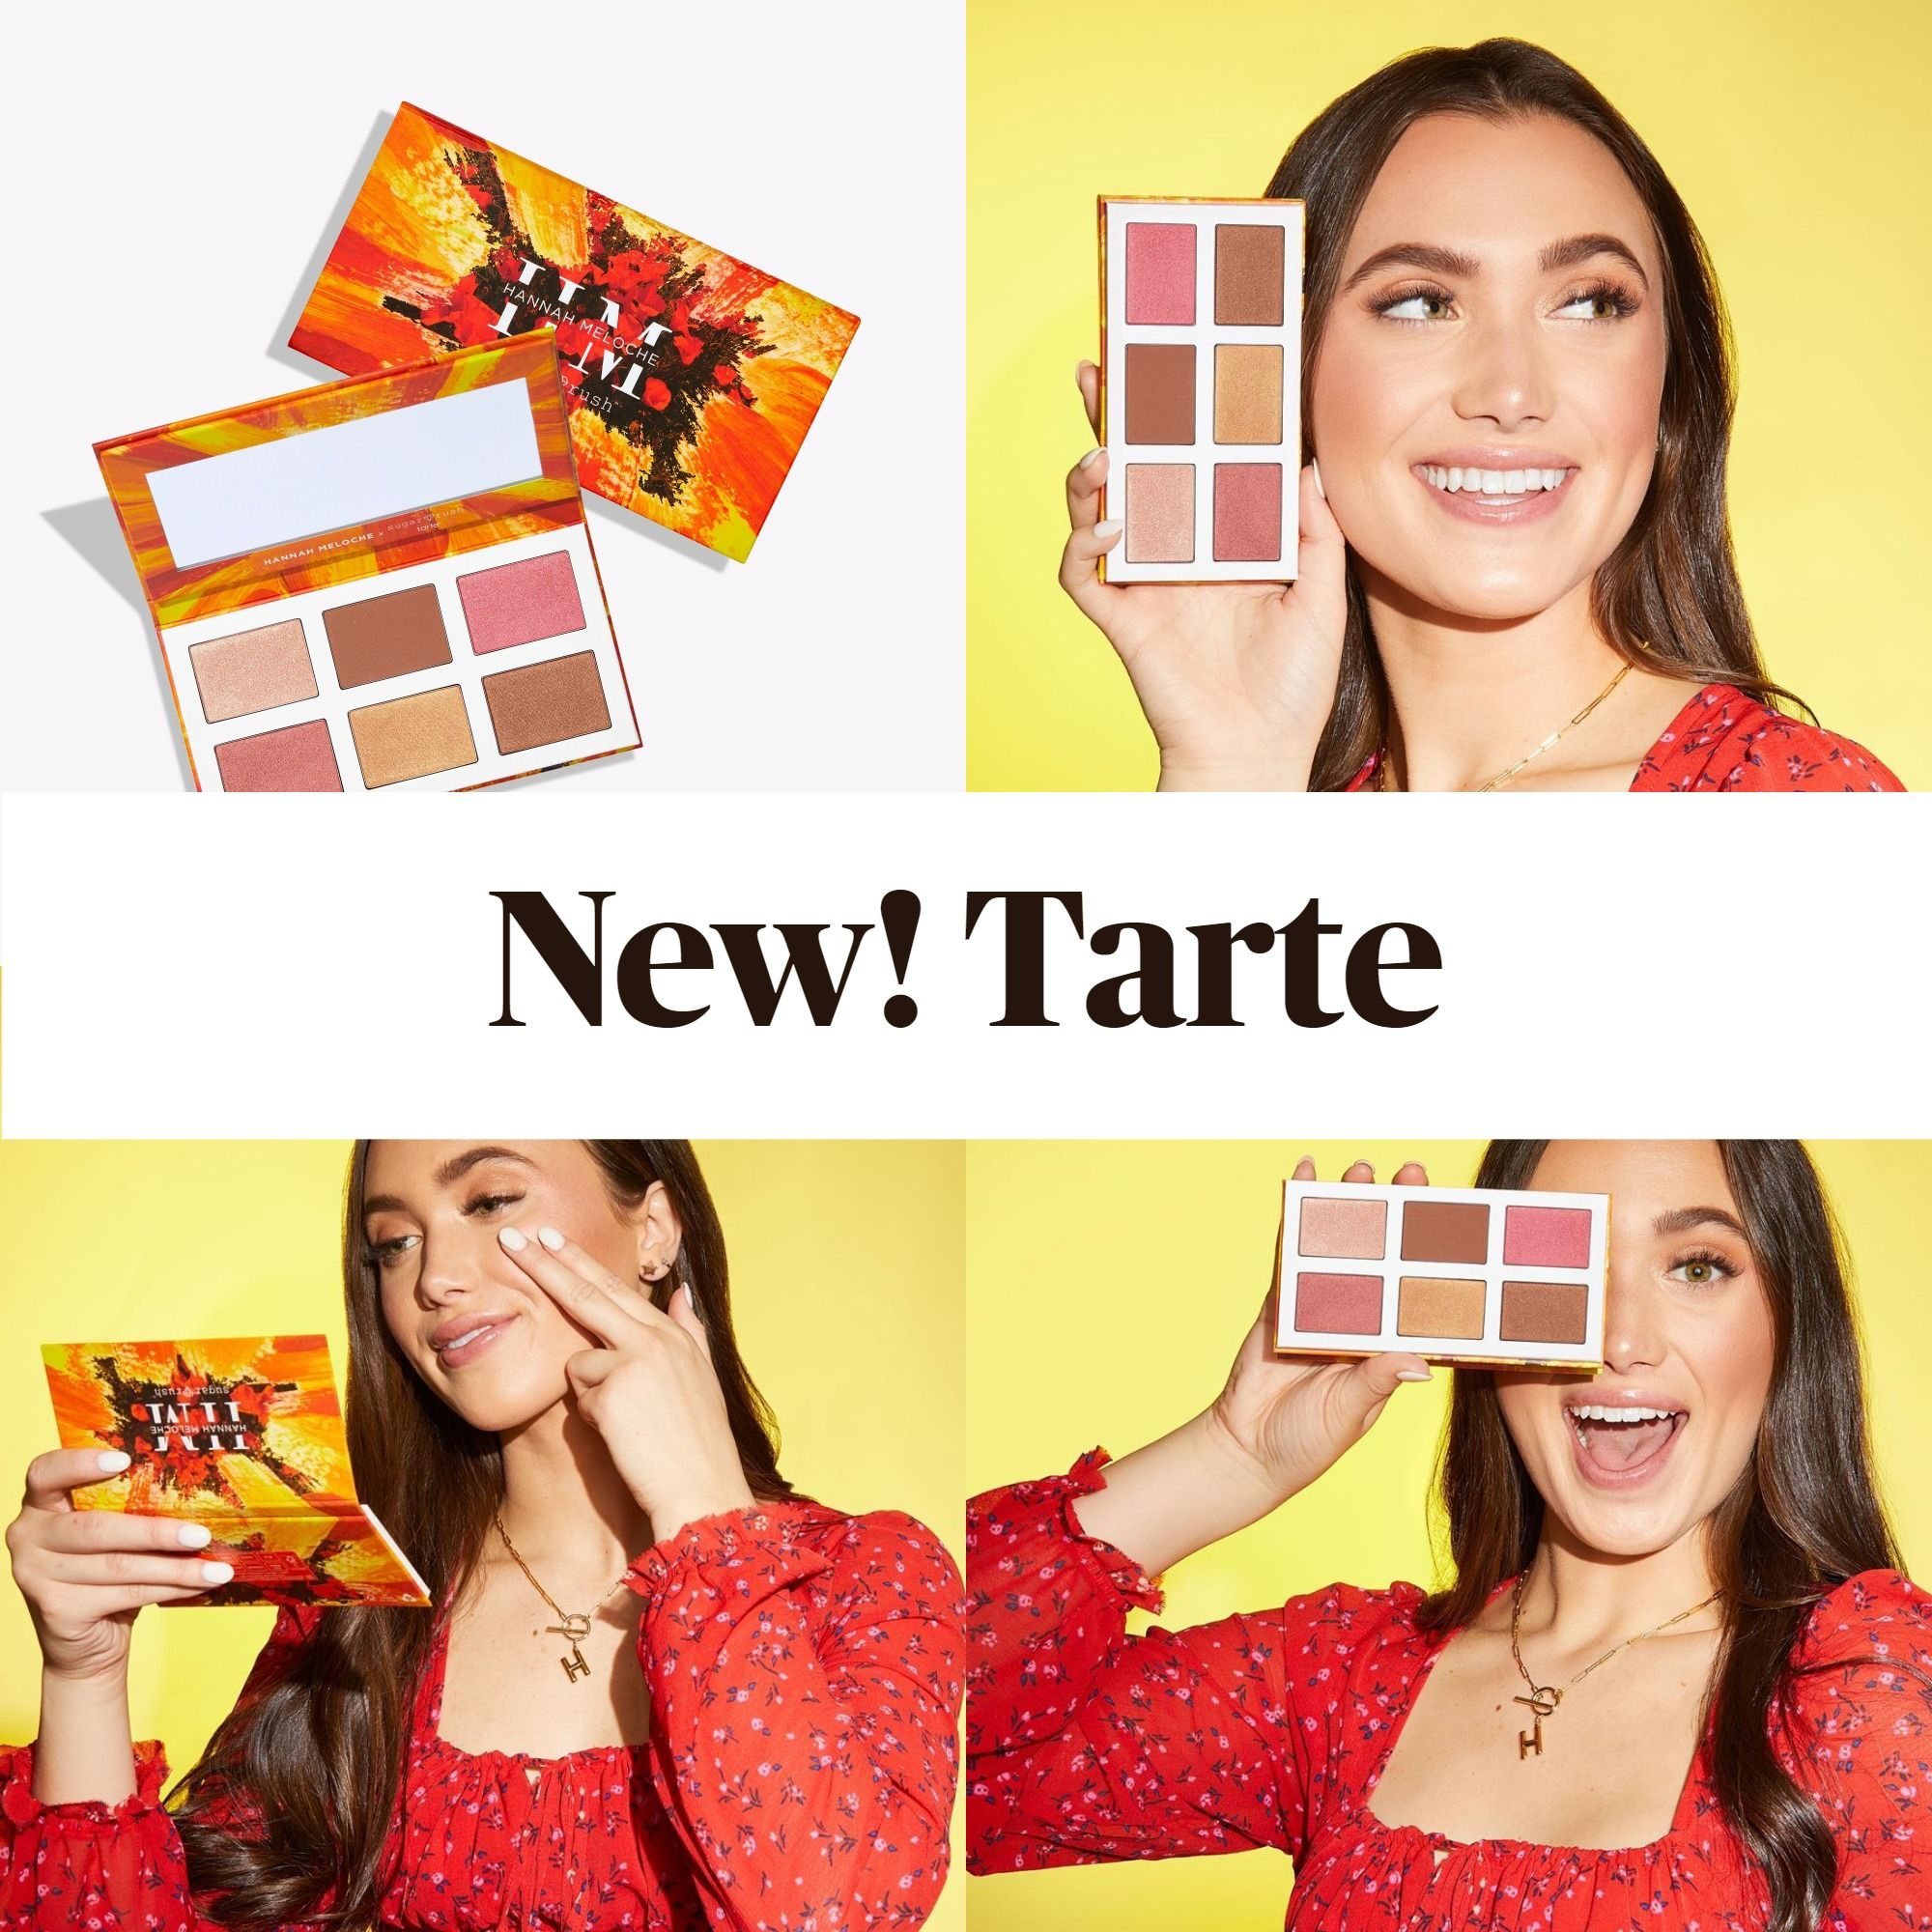 New! Tarte Cosmetics Hannah Meloche x Sugar Rush™ Multi-Purpose Palette